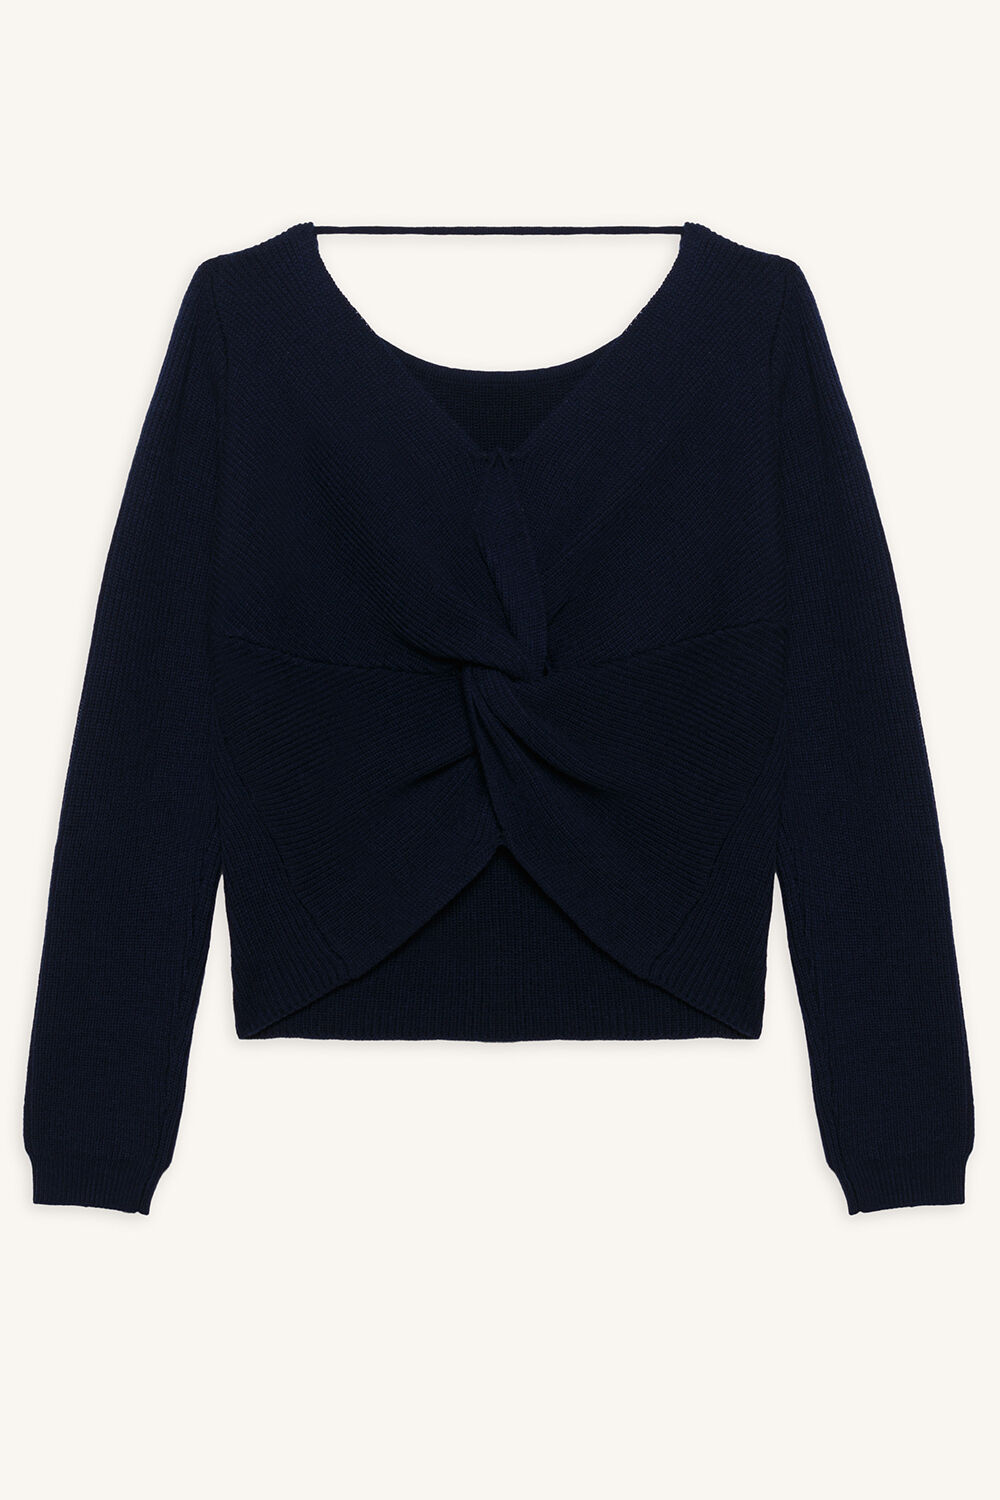 KNOT BACK SWEAT TOP in colour DRESS BLUES